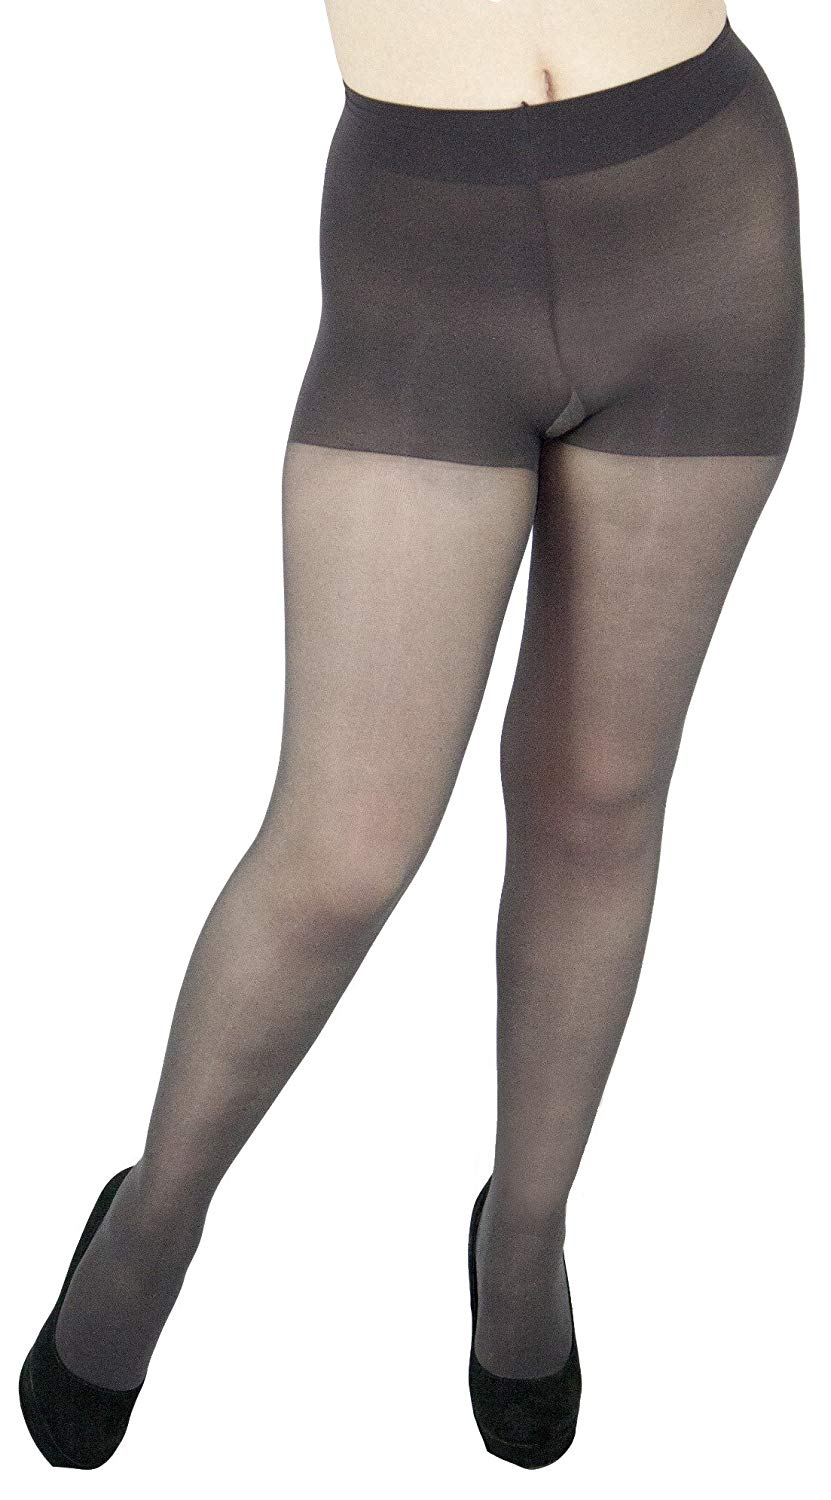 5fee432ee Get Quotations · Leggs Womens Sheer Energy Control Top Tights (Queen Plus